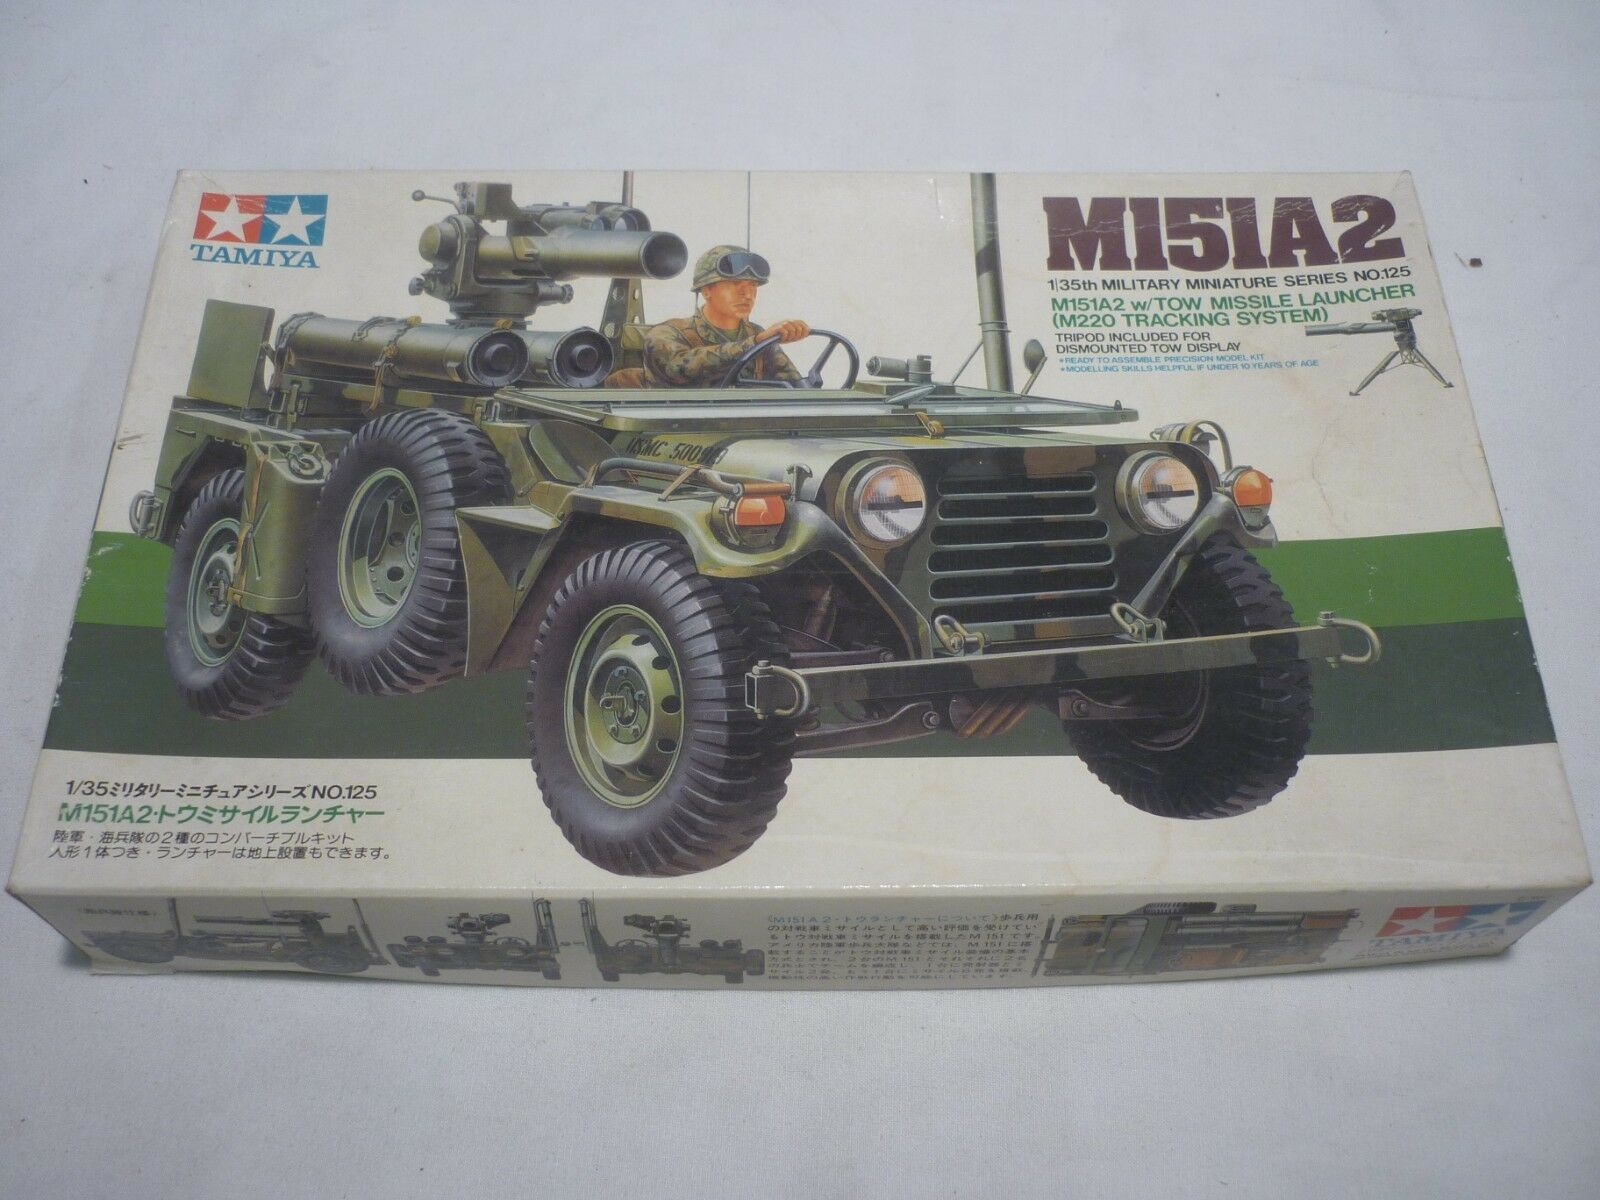 A Tamiya unmade plastic kit of a US M151A2, Missile launcher, Boxed..